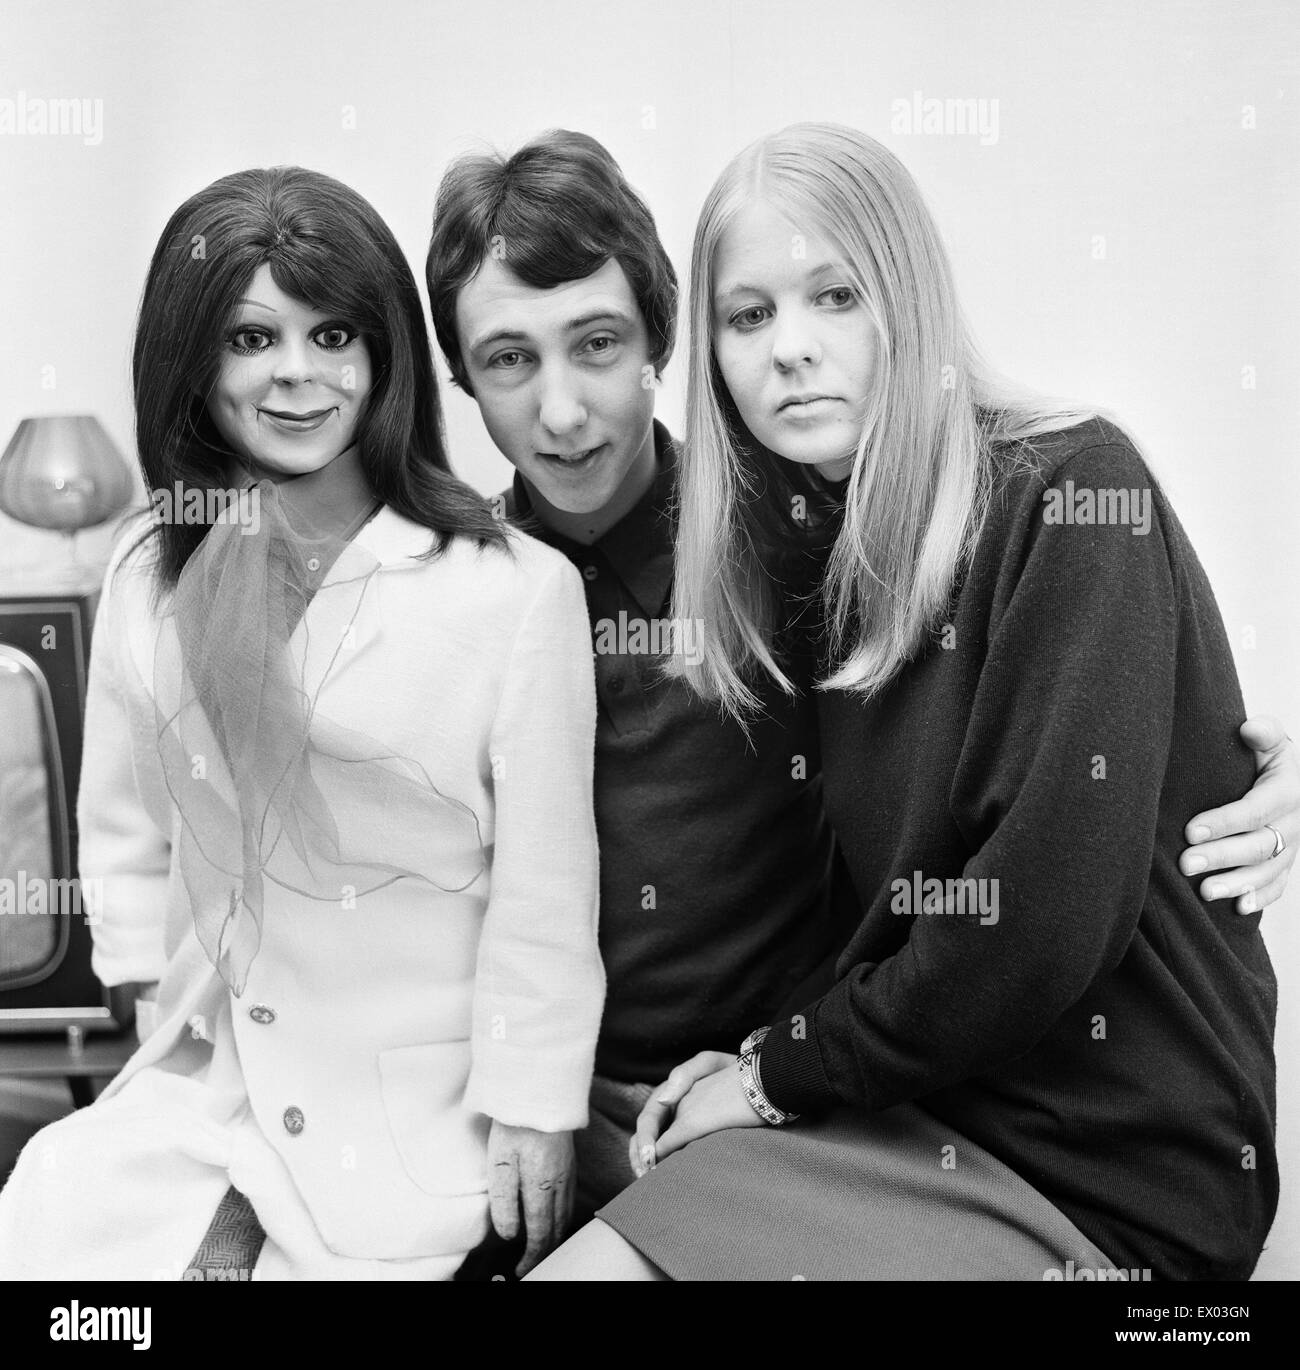 Keith Harris, young ventriloquist aged 20 years old, pictured with dummy called Minnie and girlfriend Jennifer Crompton, - Stock Image